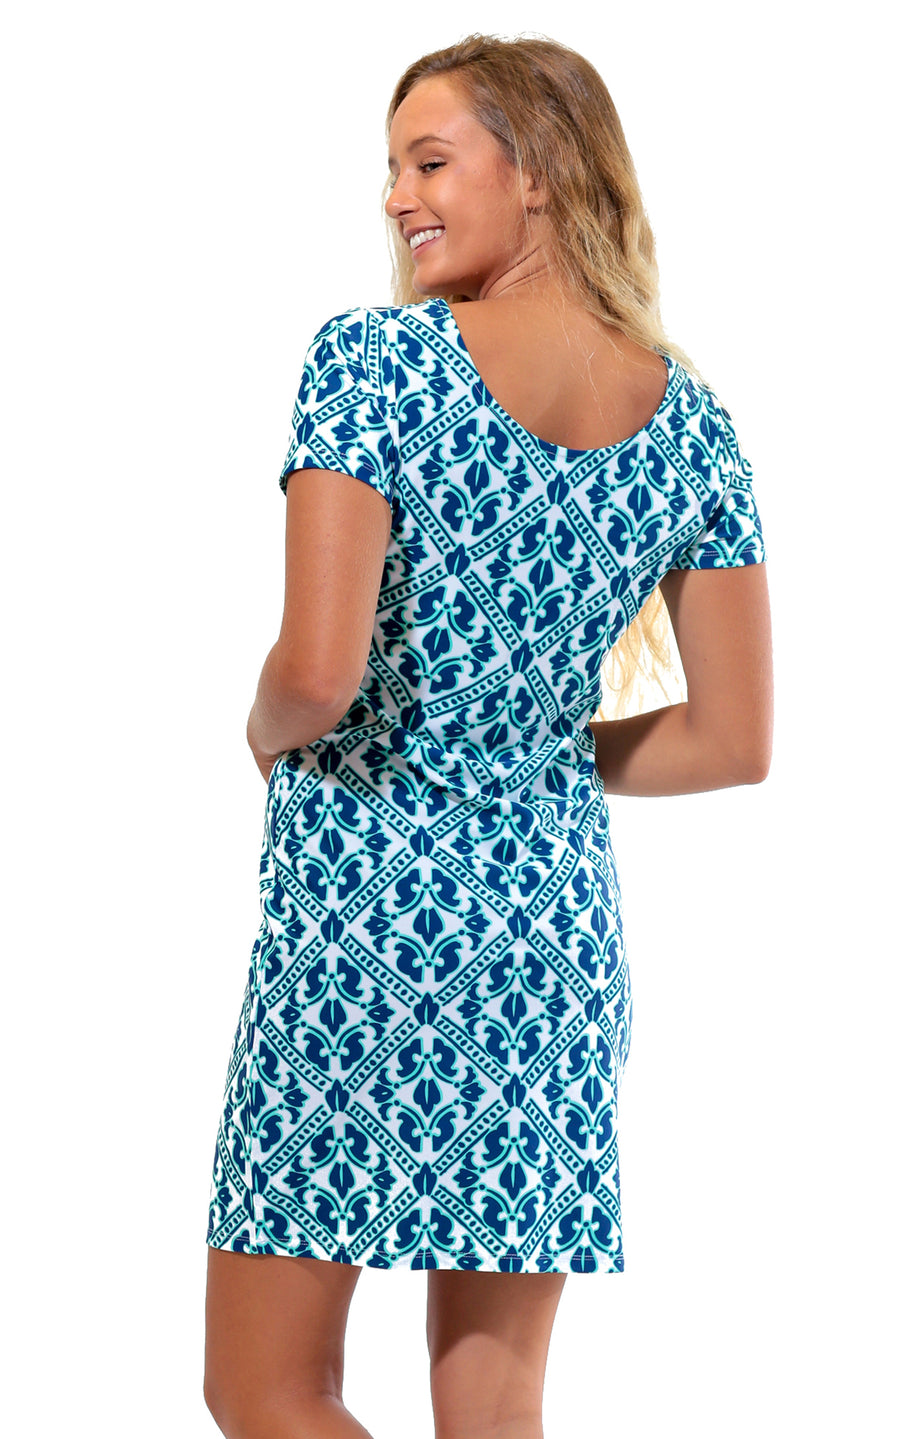 Aqua Trellis Cove Road Short Sleeve Scoop Neck Dress  - FINAL SALE